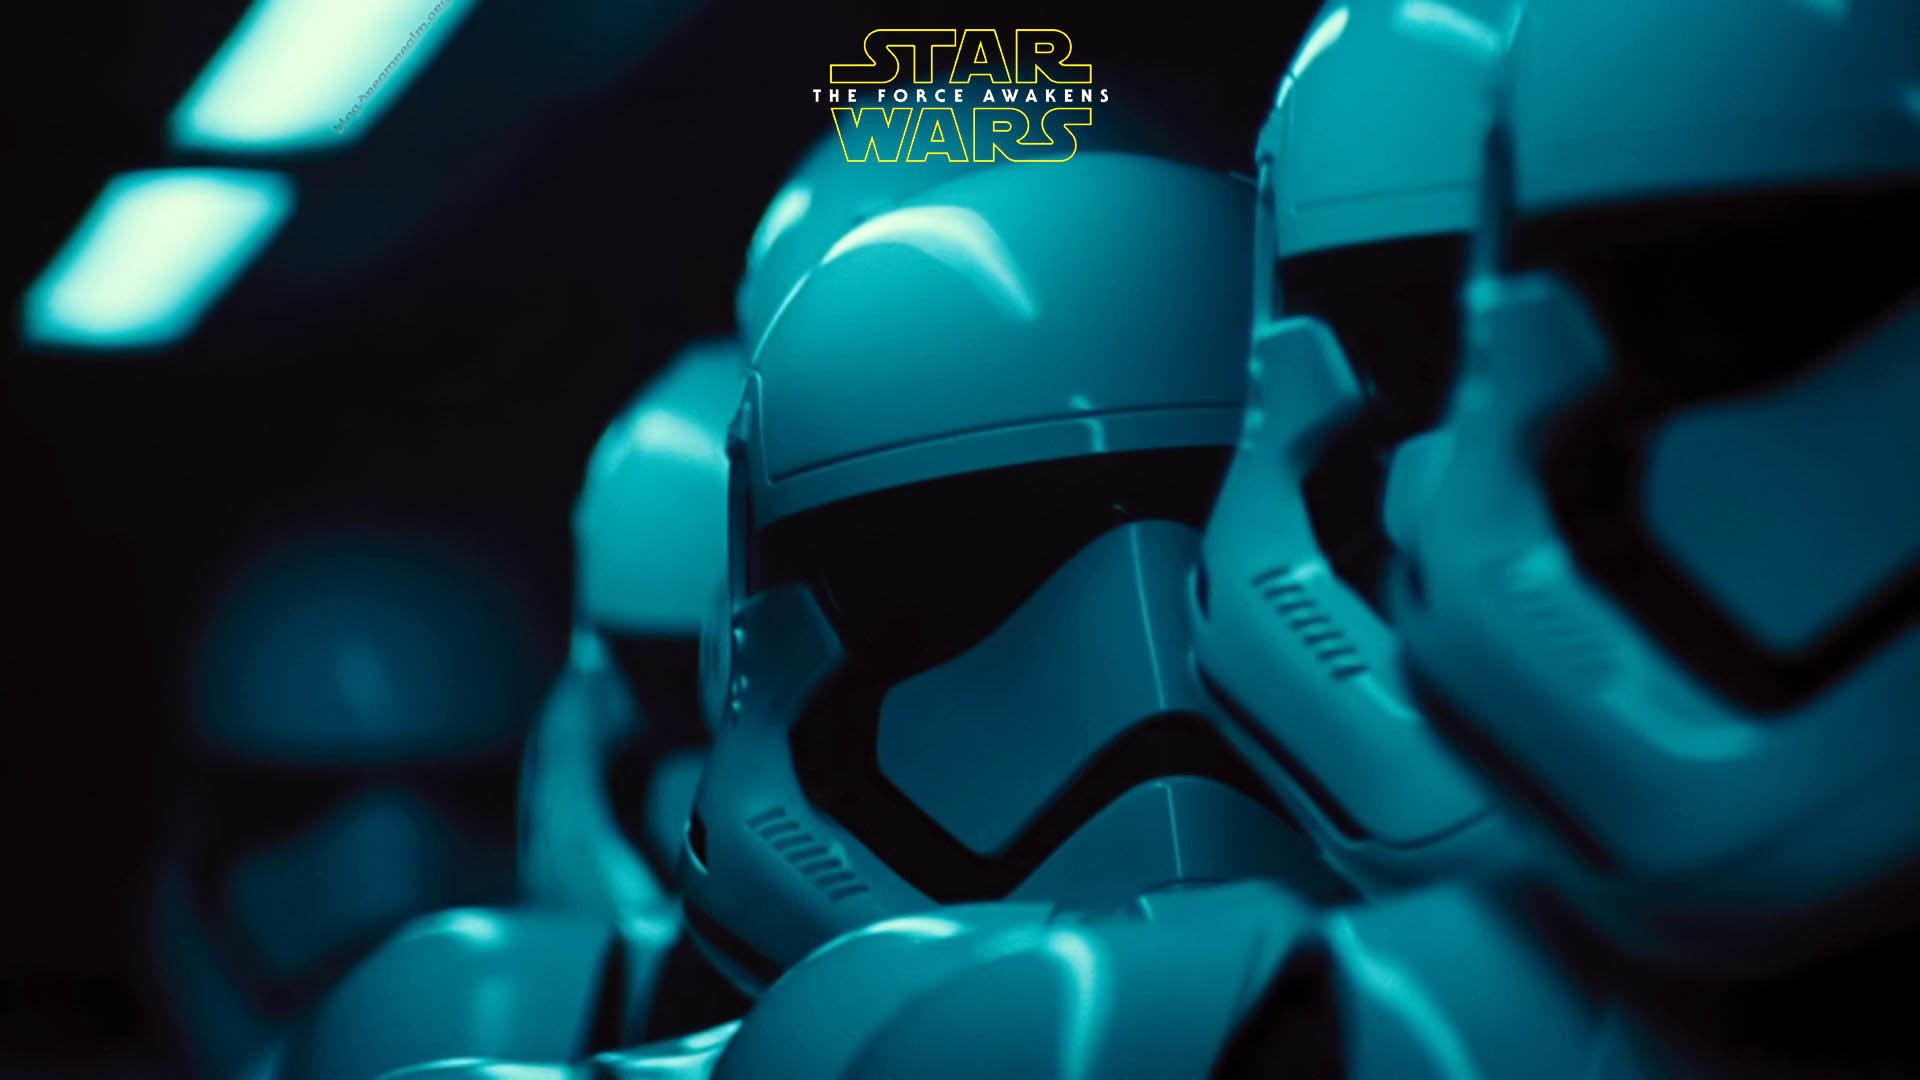 Res: 1920x1080, Stormtroopers-Close-Up-Star-Wars-The-Force-Awakens-